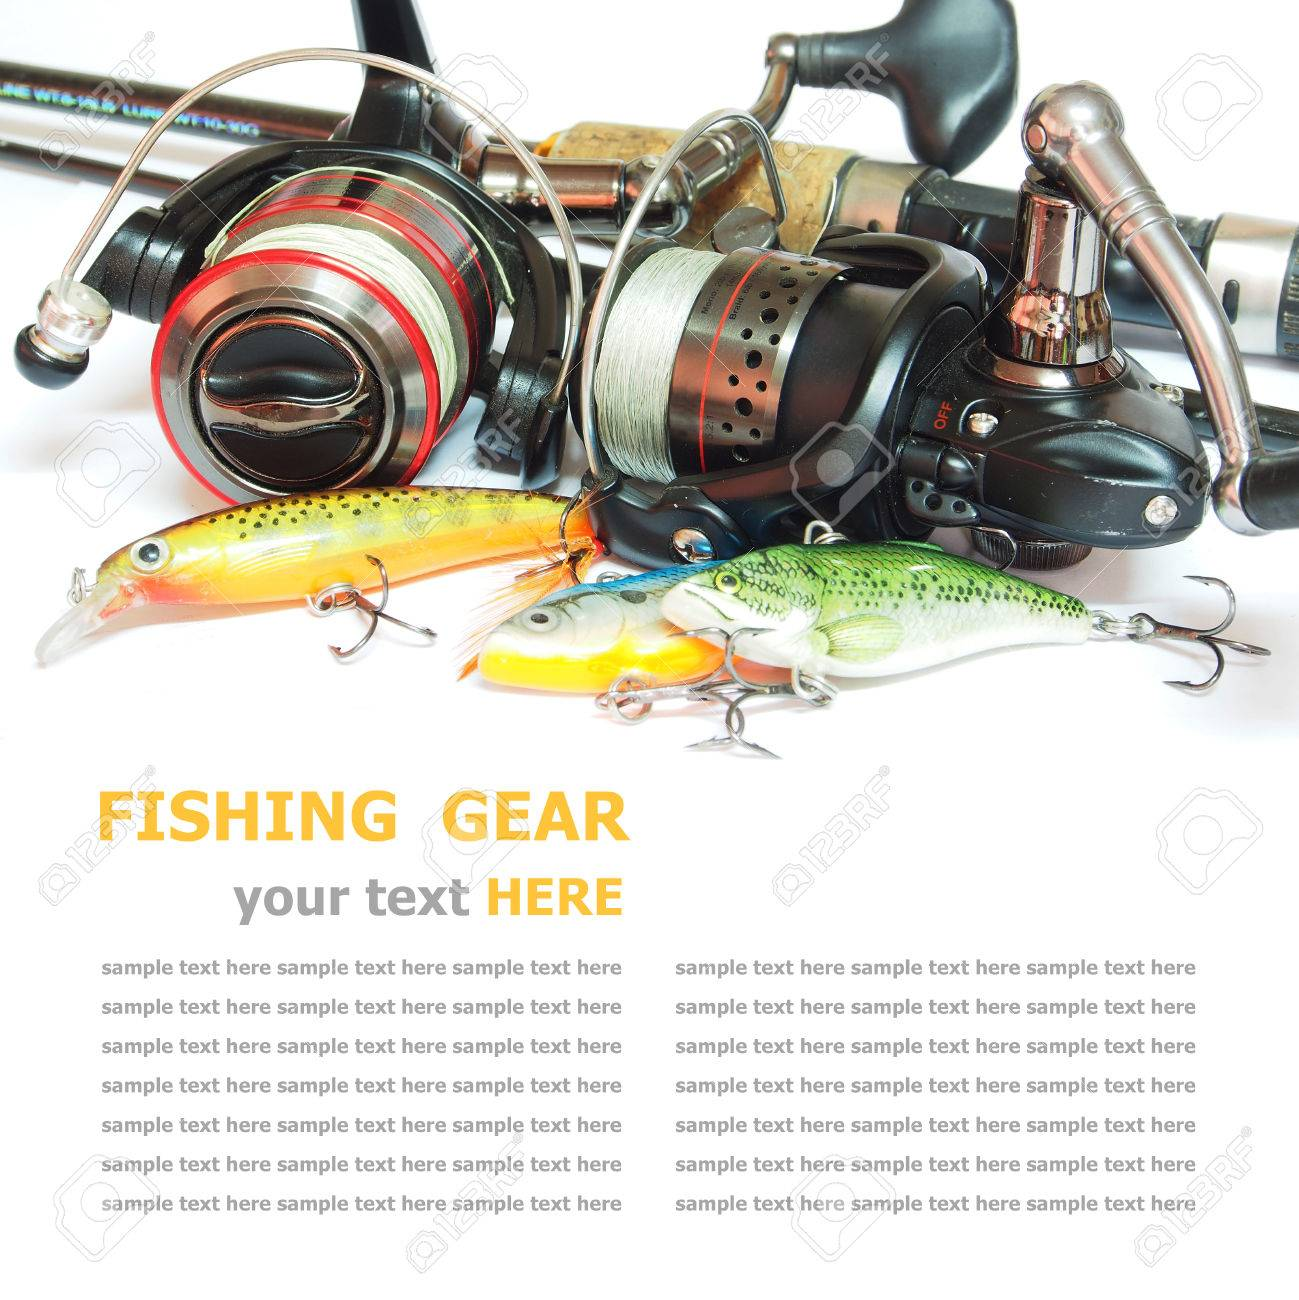 Fishing gear is isolated on a white background Standard-Bild - 26986286